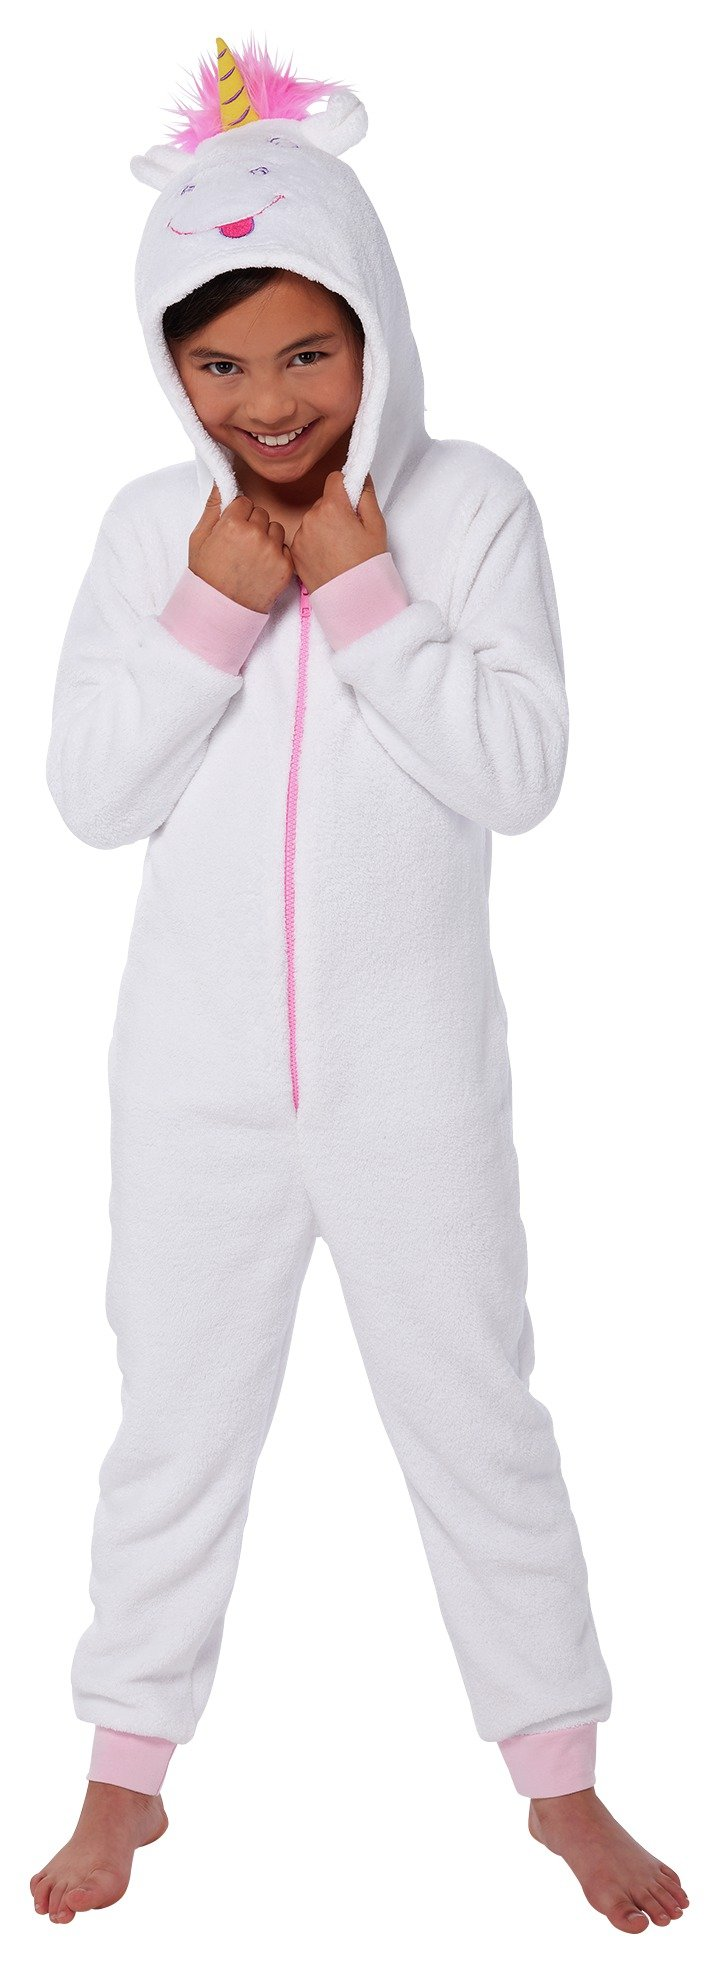 Image of Minions Fluffy Onesie - 7-8 Years